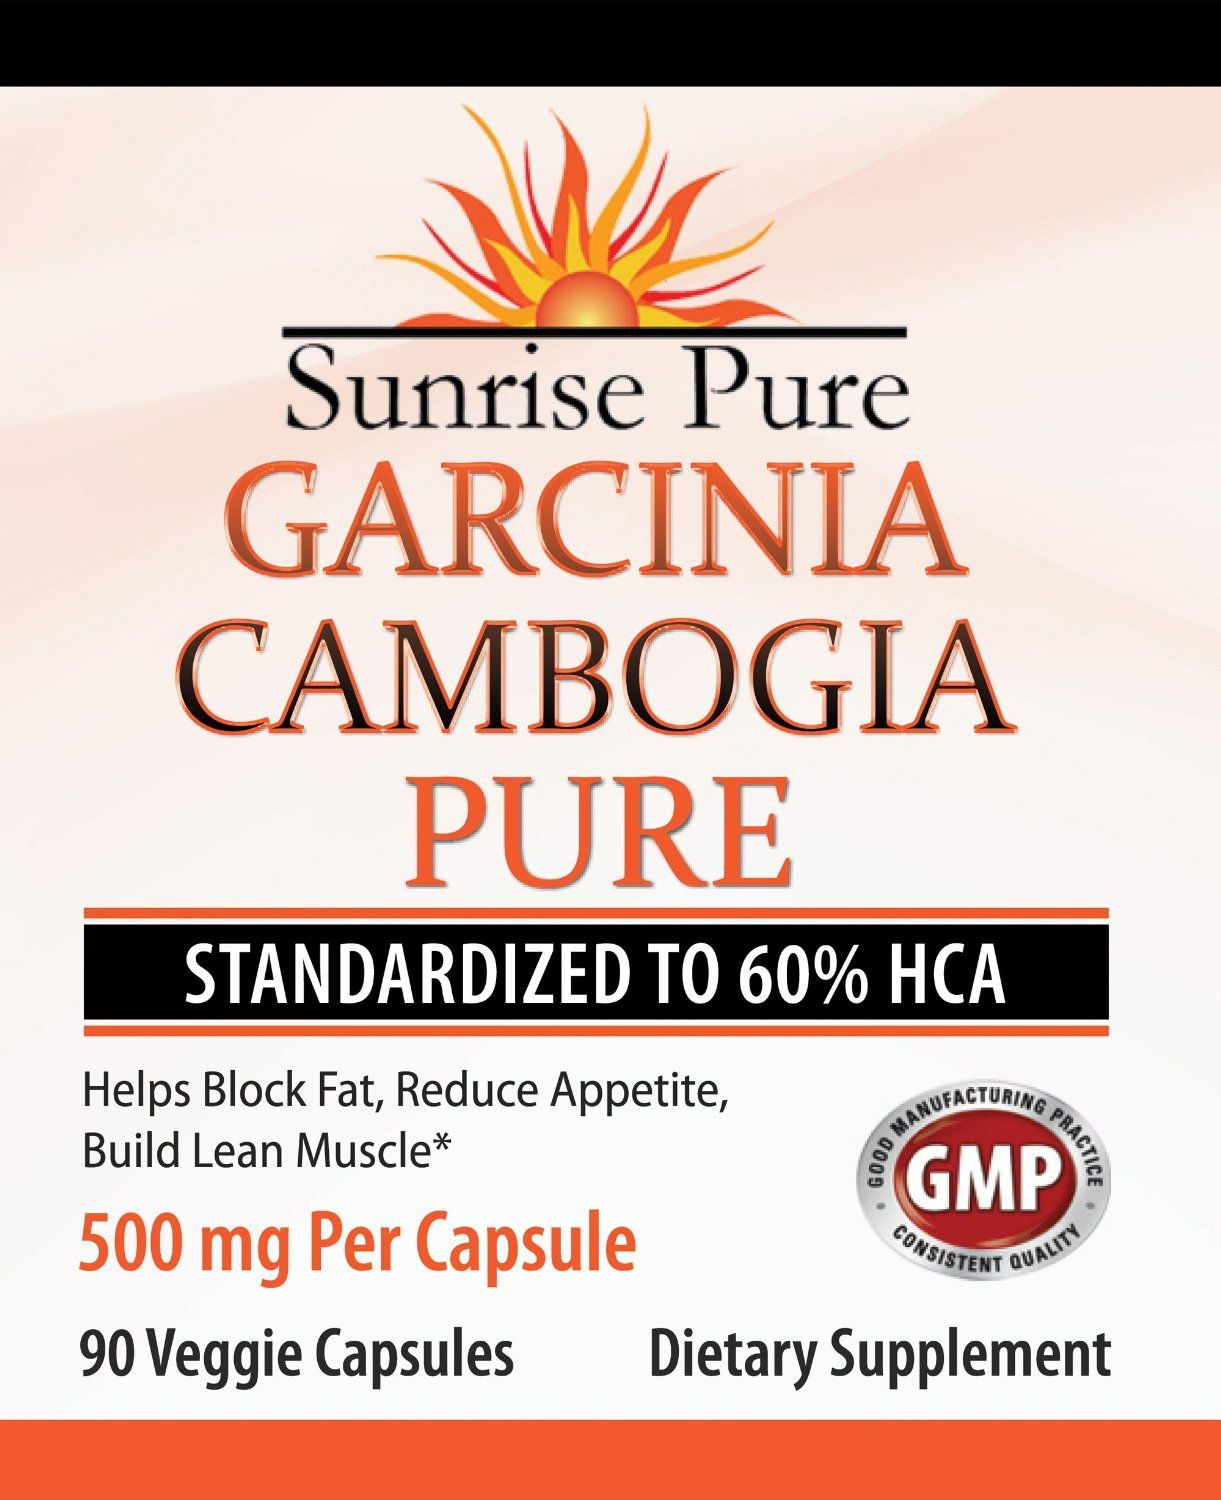 Amazon.com: Sunrise Pure Garcinia Cambogia Extract - #1 Clinically Proven 60% HCA - 90 Veg Capsules, 500mg - 100% Natural - 100% Pure - SUNRISE PURE WEIGHT LOSS GUARANTEE: Health & Personal Care